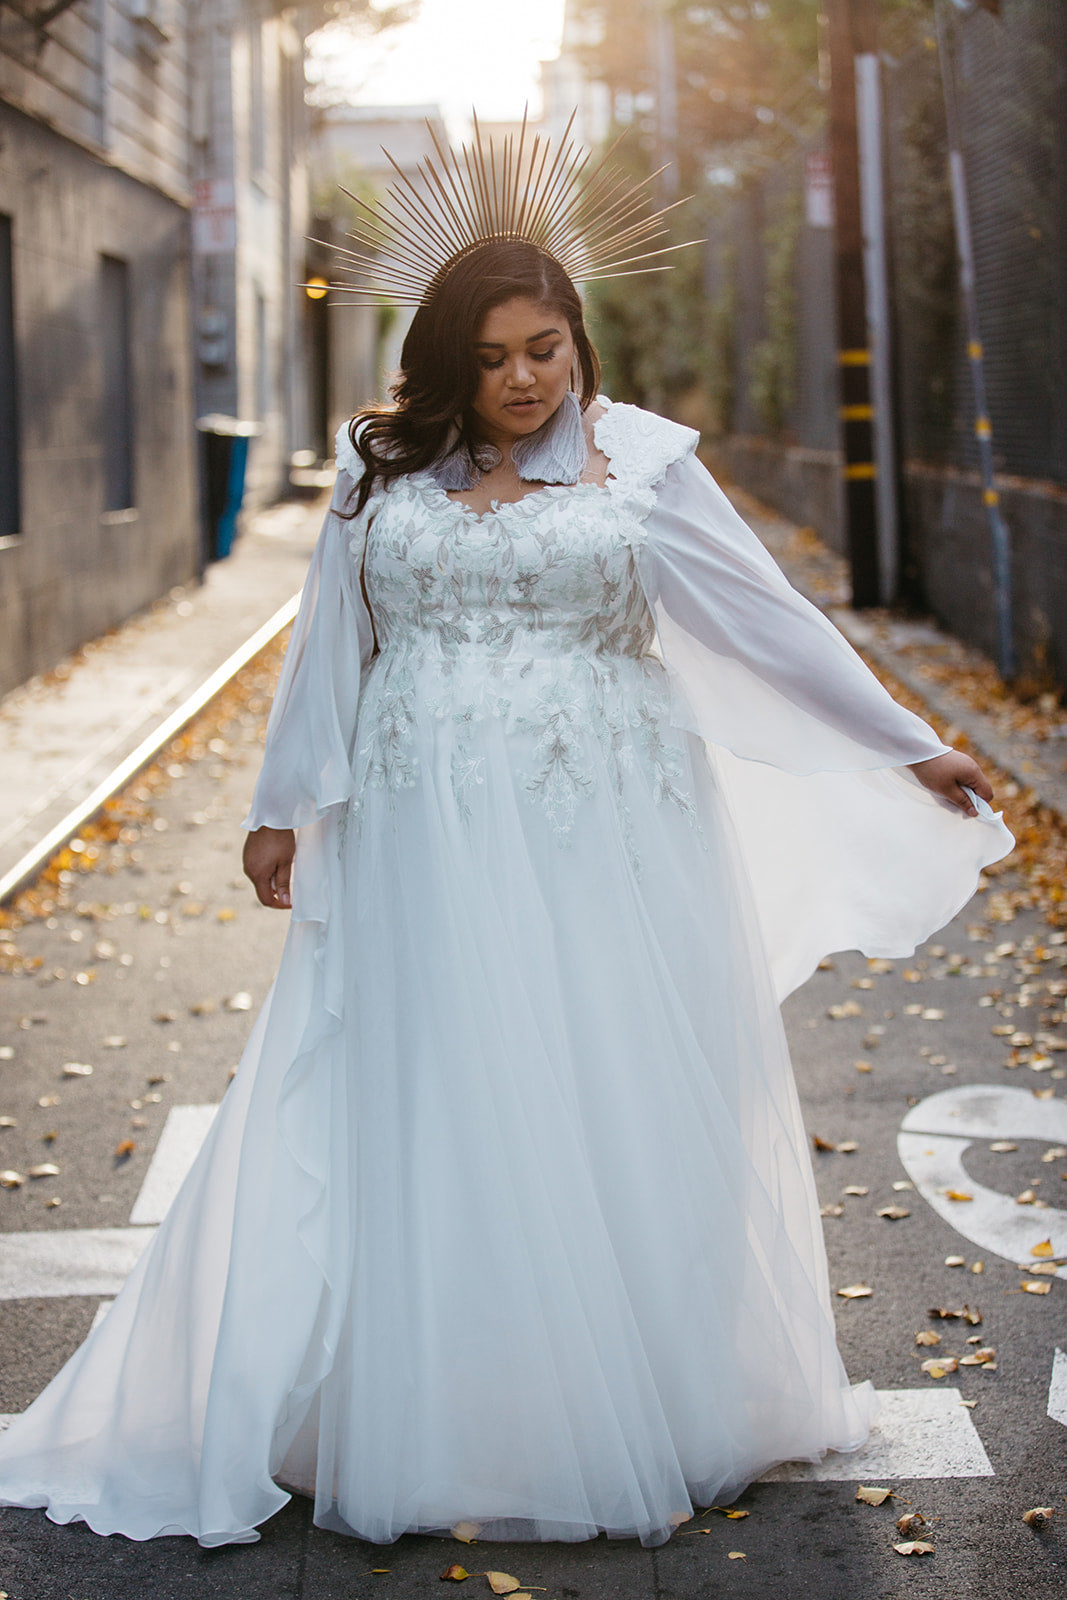 Why We Decided To Do a Plus-Size Wedding Dress Collection ...